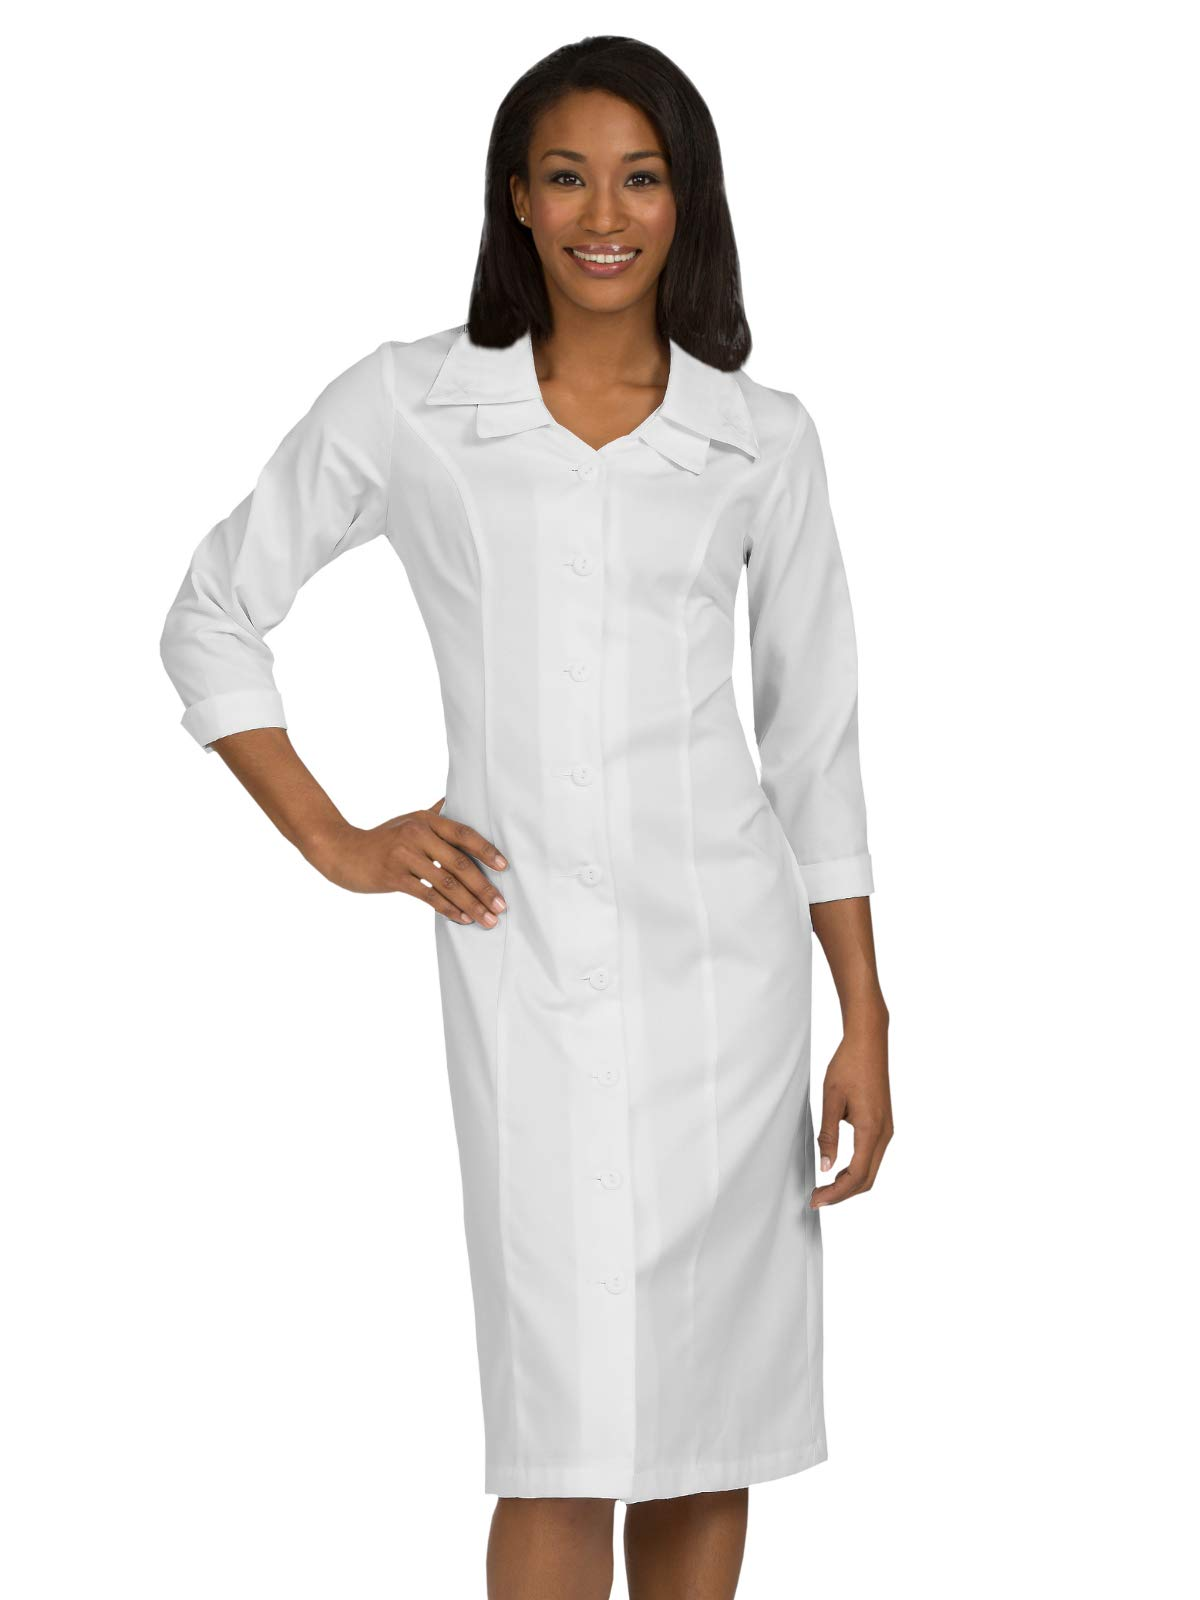 Med Couture Professional Women's Embroidered Collar Dress White 30W by Med Couture